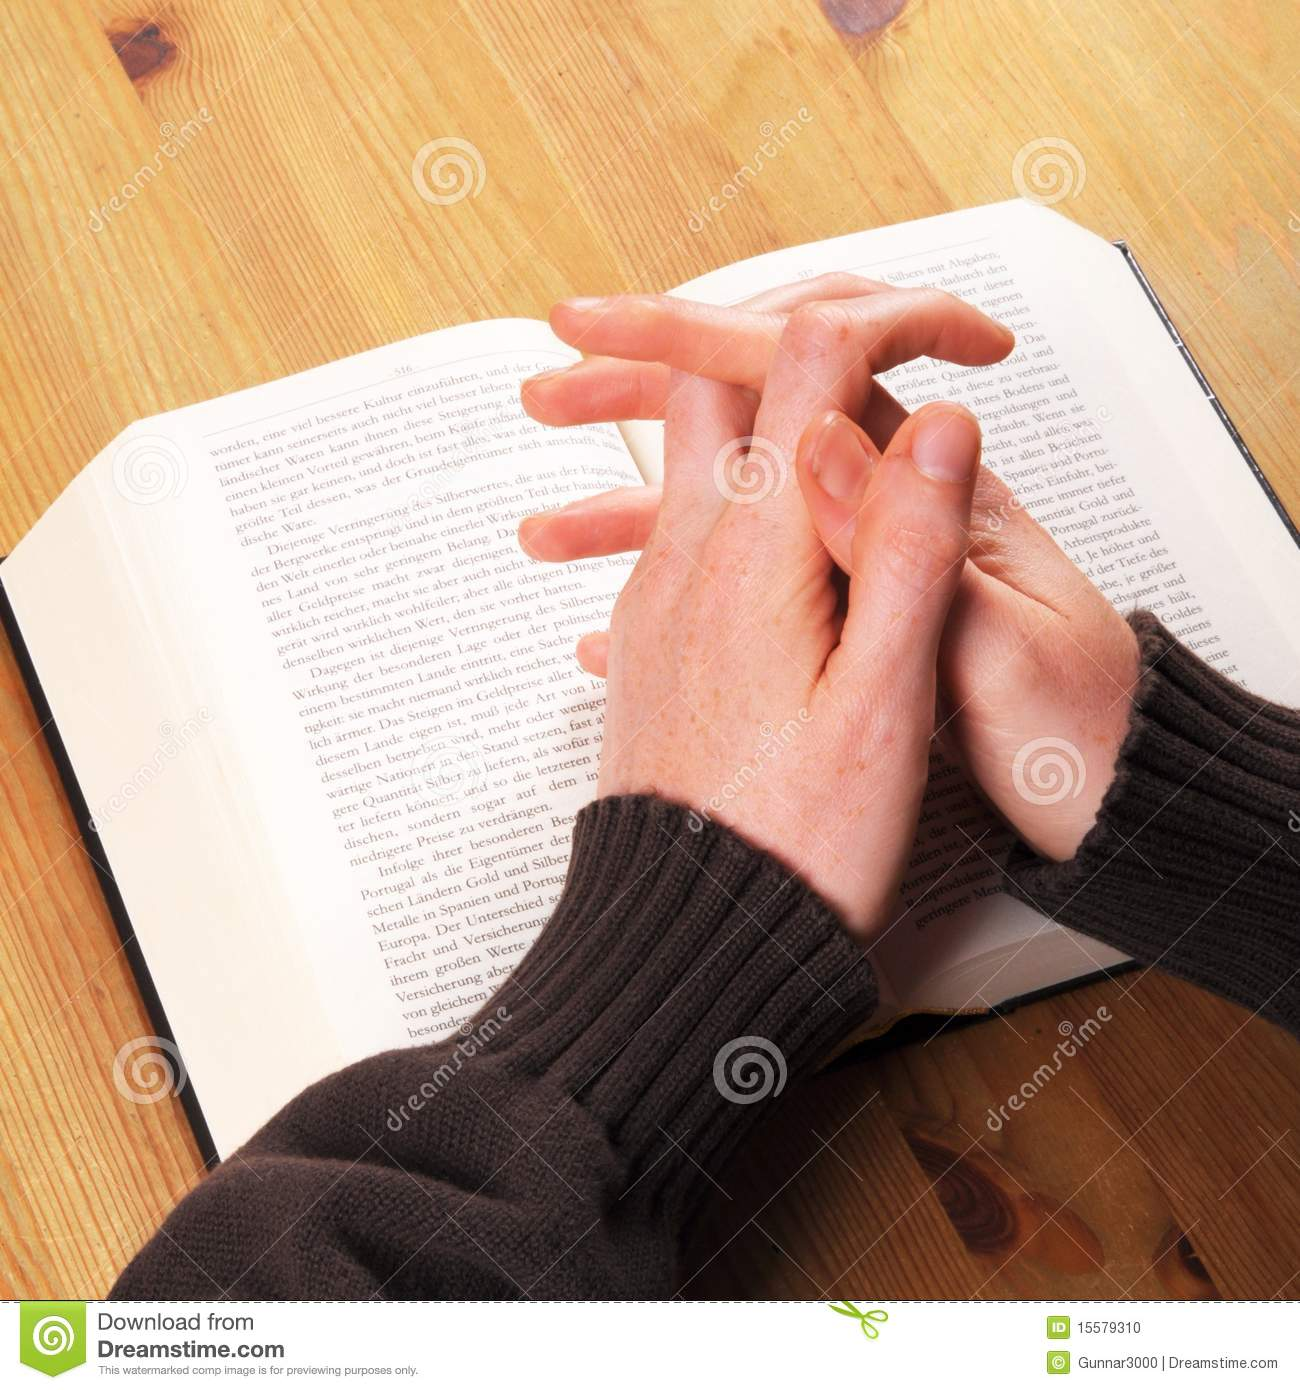 Praying hands stock photo  Image of church, peace, christ - 15579310